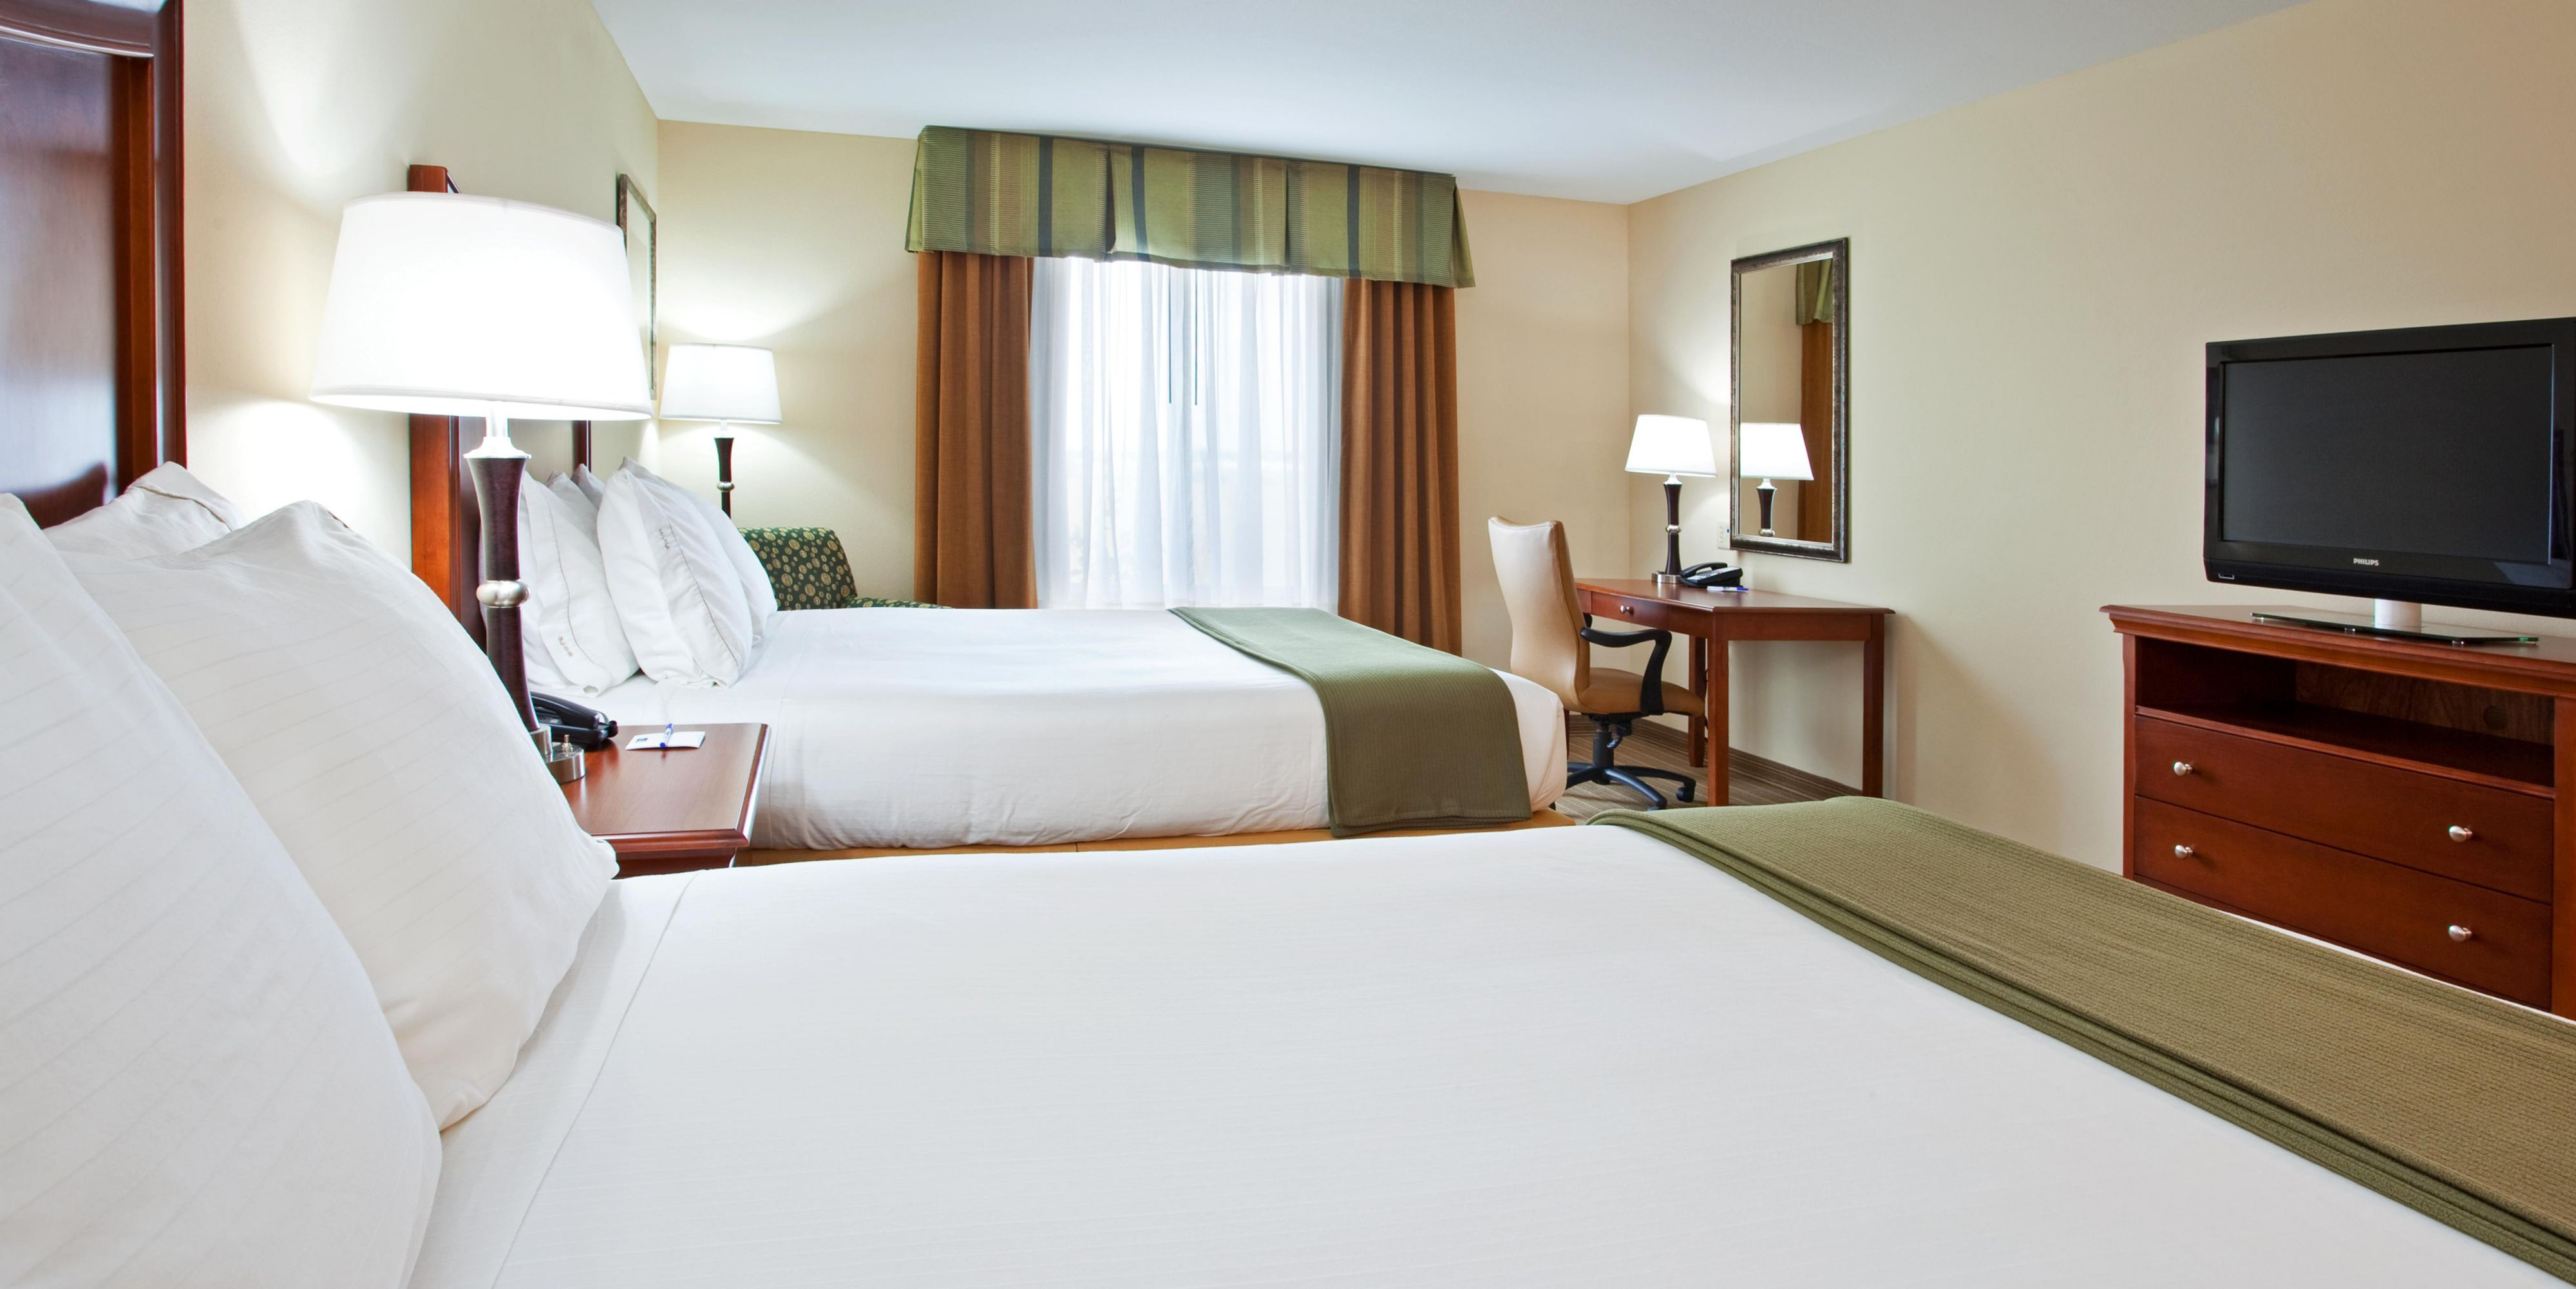 Holiday Inn Express And Suites Portland 2532017821 2x1